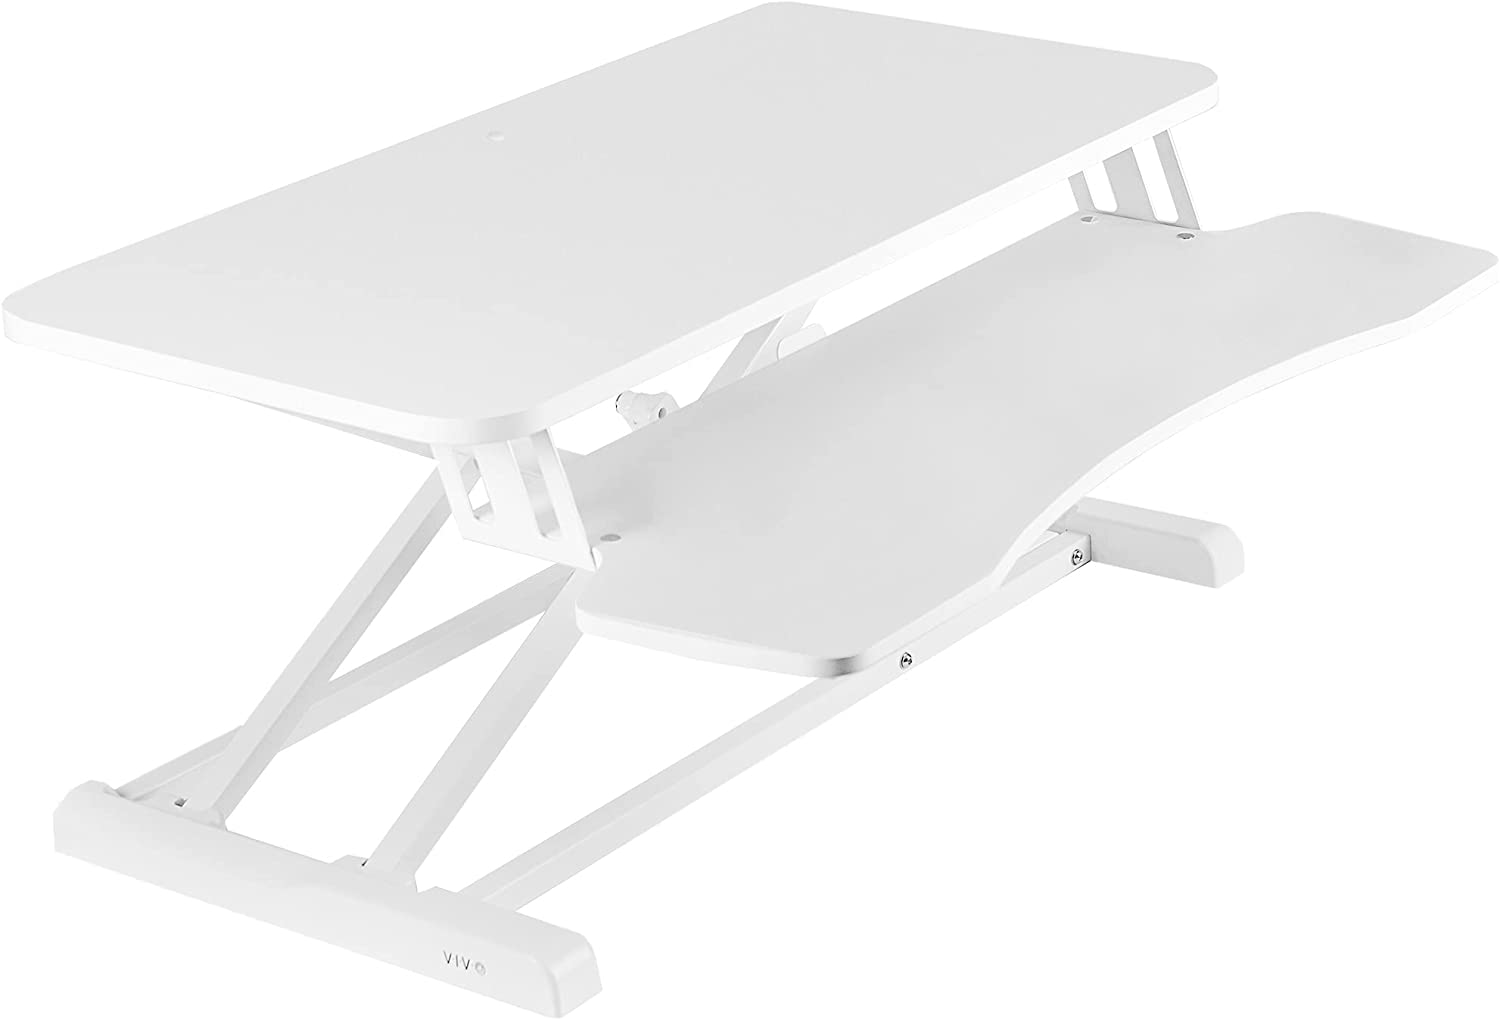 VIVO Standing 32 inch Desk Converter, Height Adjustable Riser, Sit to Stand Dual Monitor and Laptop Workstation with Wide Keyboard Tray, White, DESK-V000KW